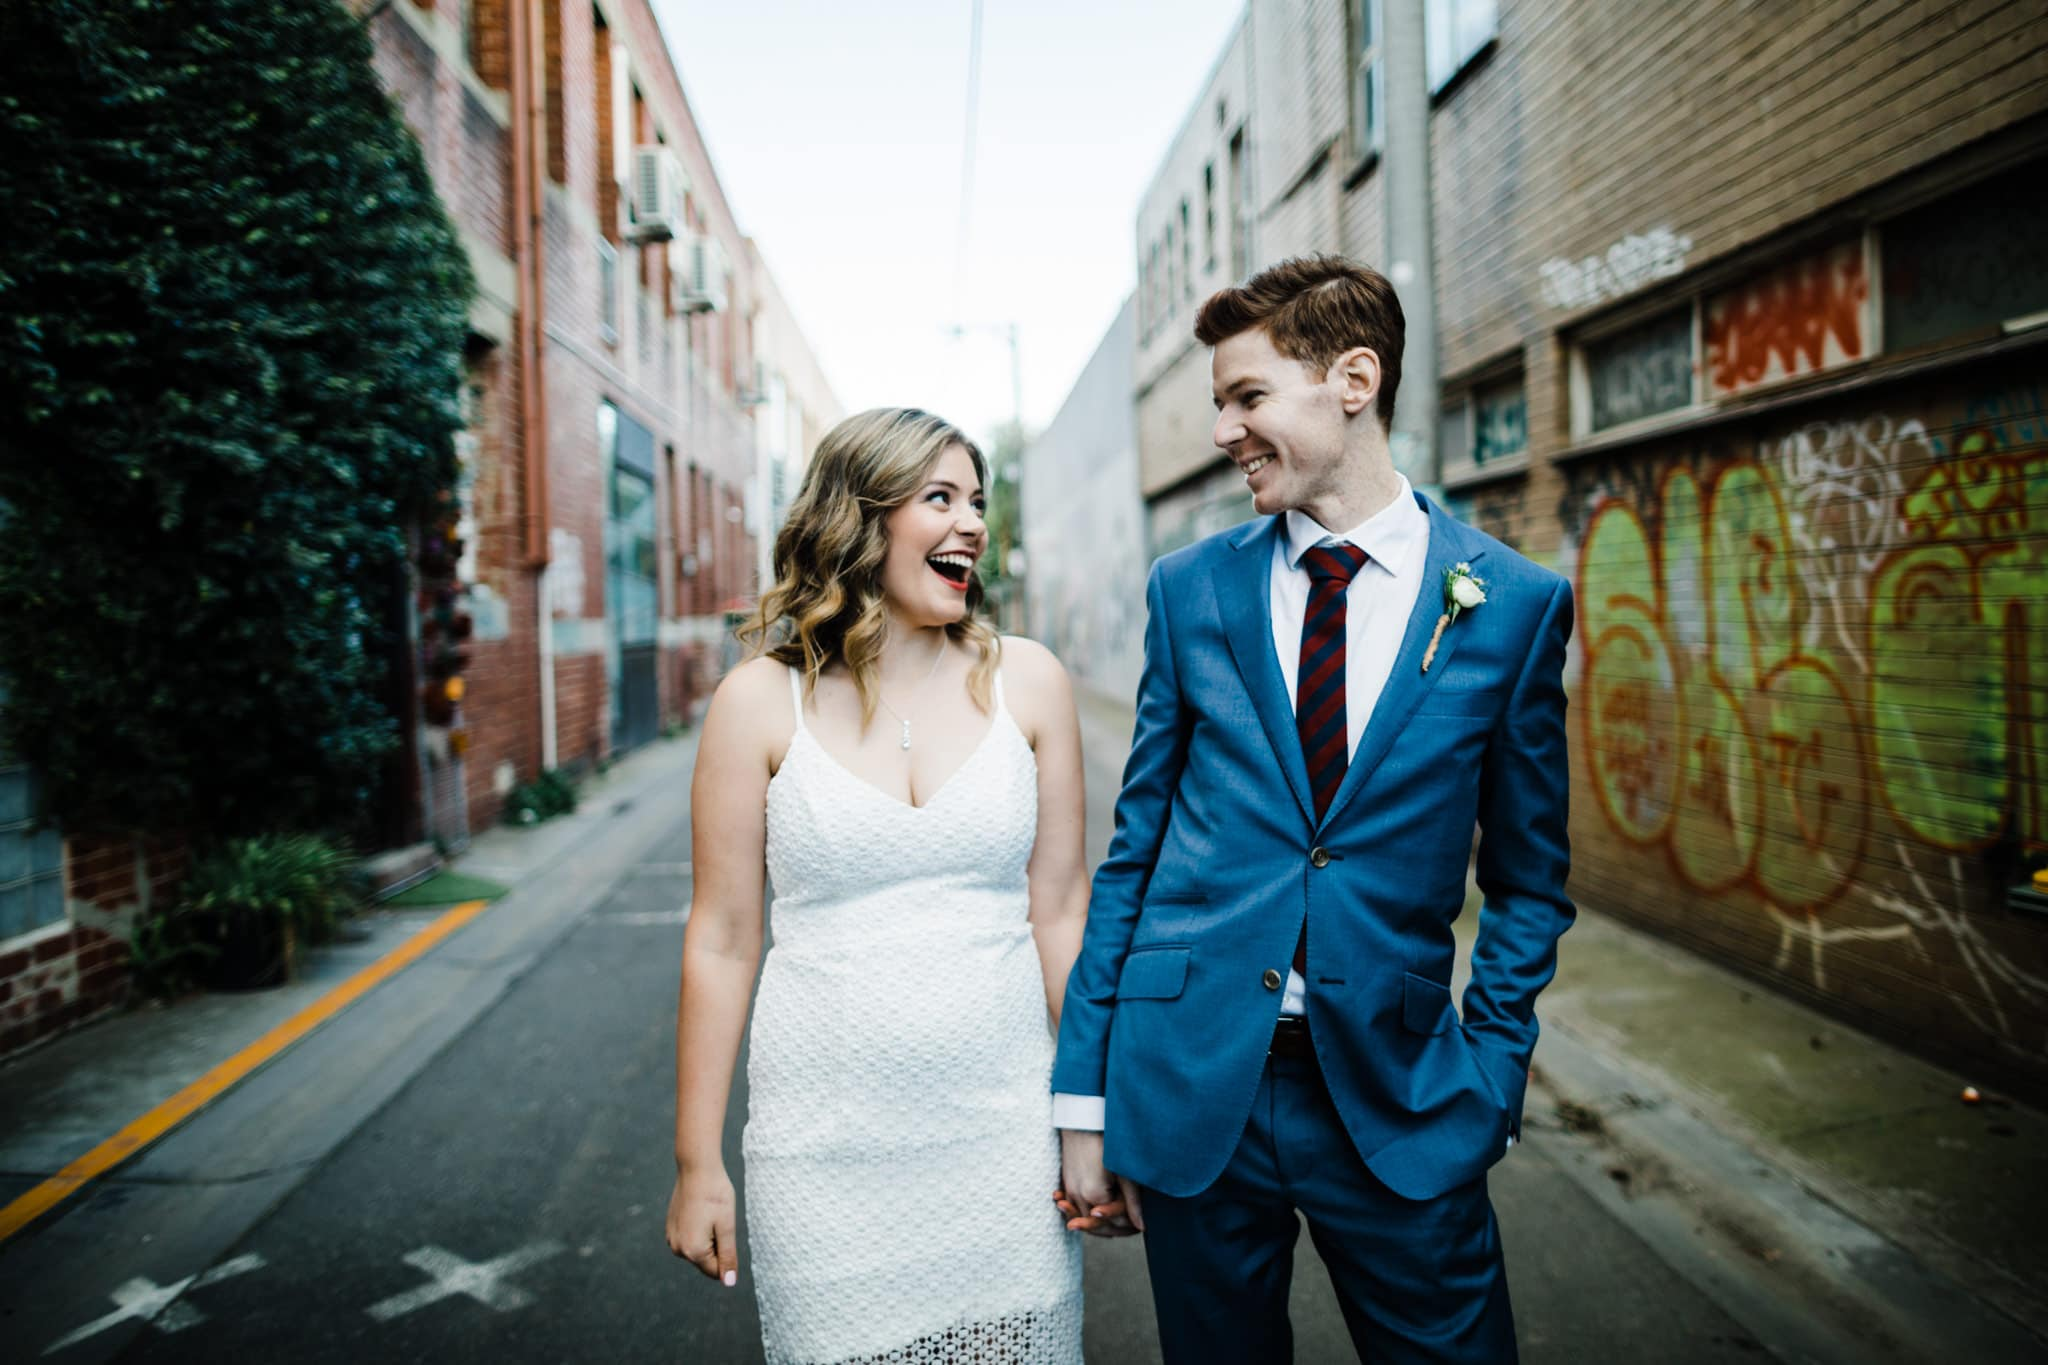 fun wedding photographer makes you feel relaxed in melbourne